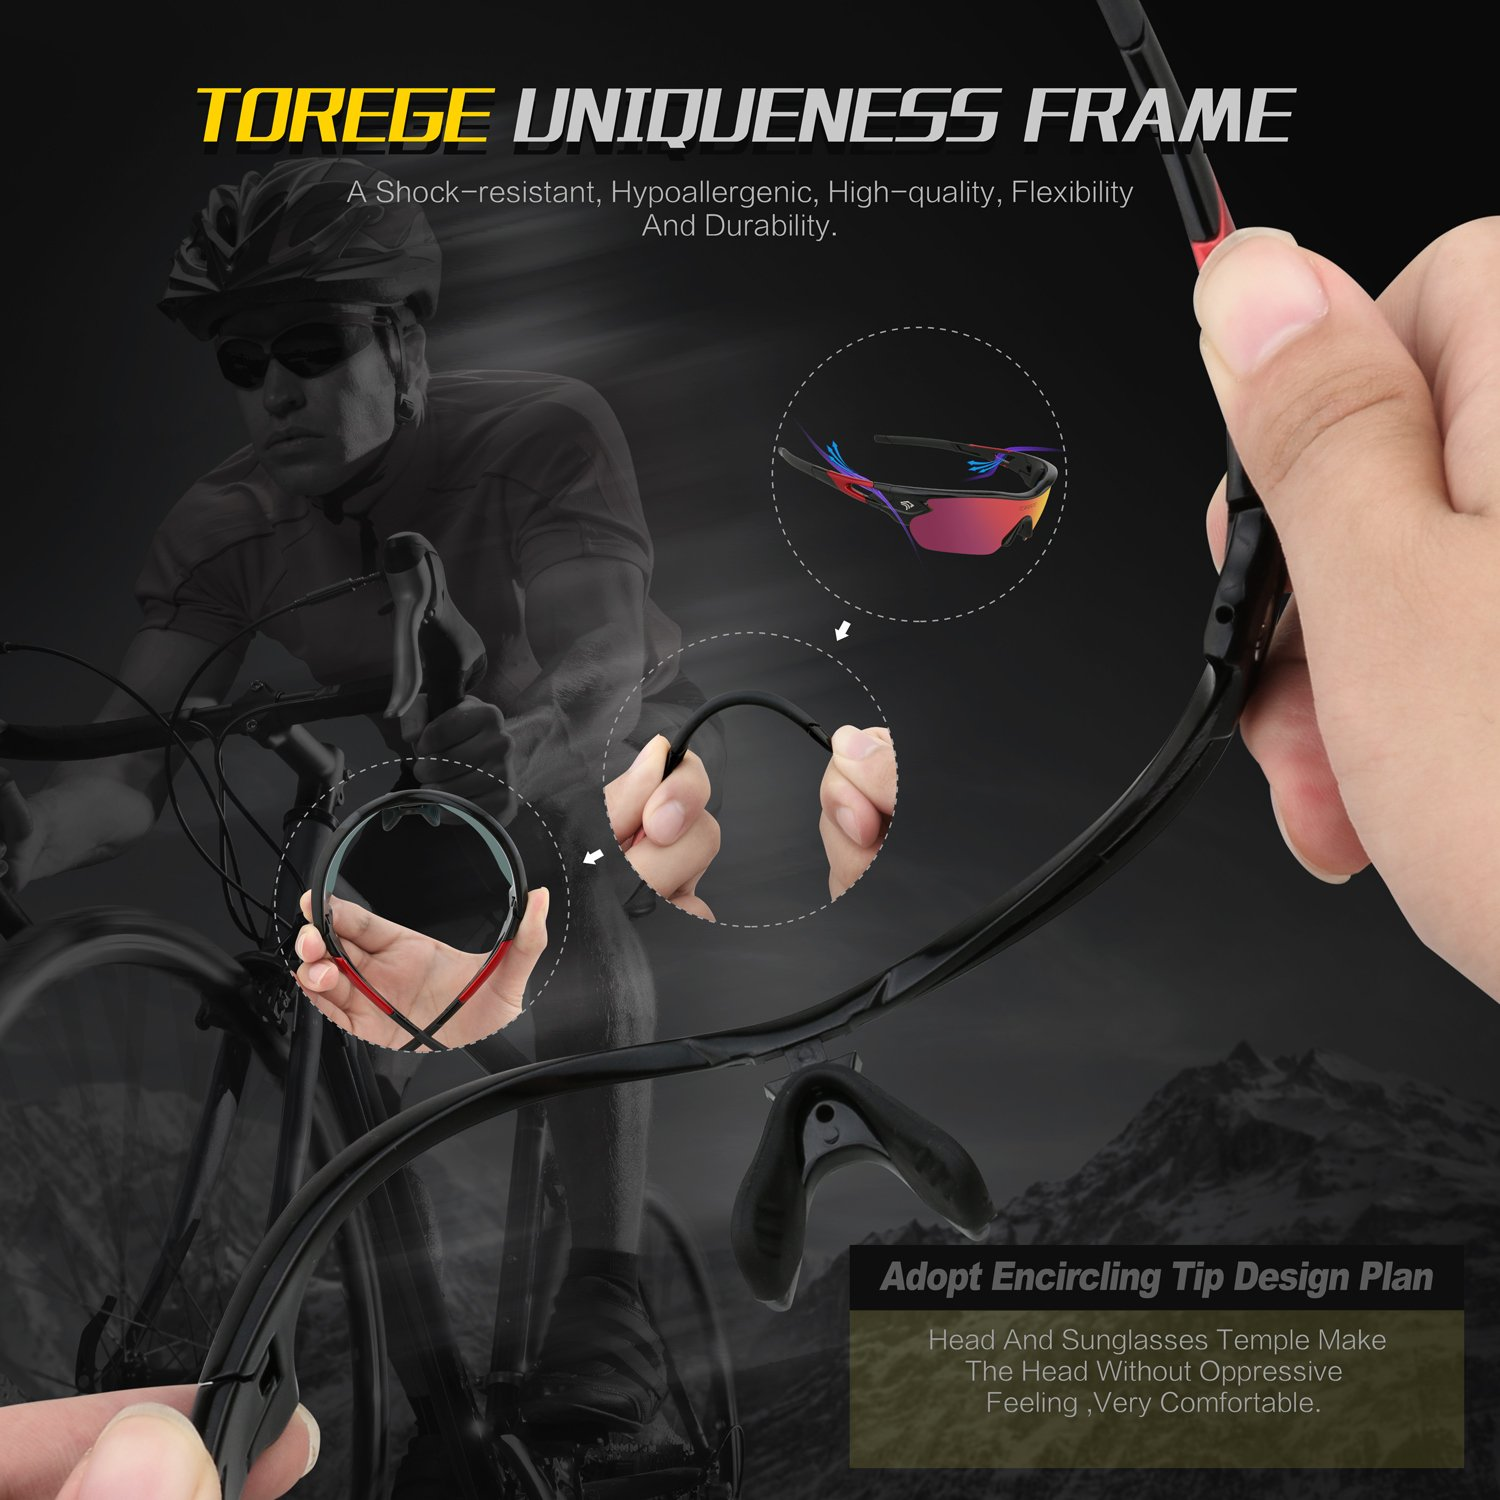 5db91e9ebdc81 TOREGE Polarized Sports Sunglasses with 5 Interchangeable Lenes for Men  Women Cycling Running Driving Fishing Golf Baseball Glasses TR002 (Black Red   Red ...